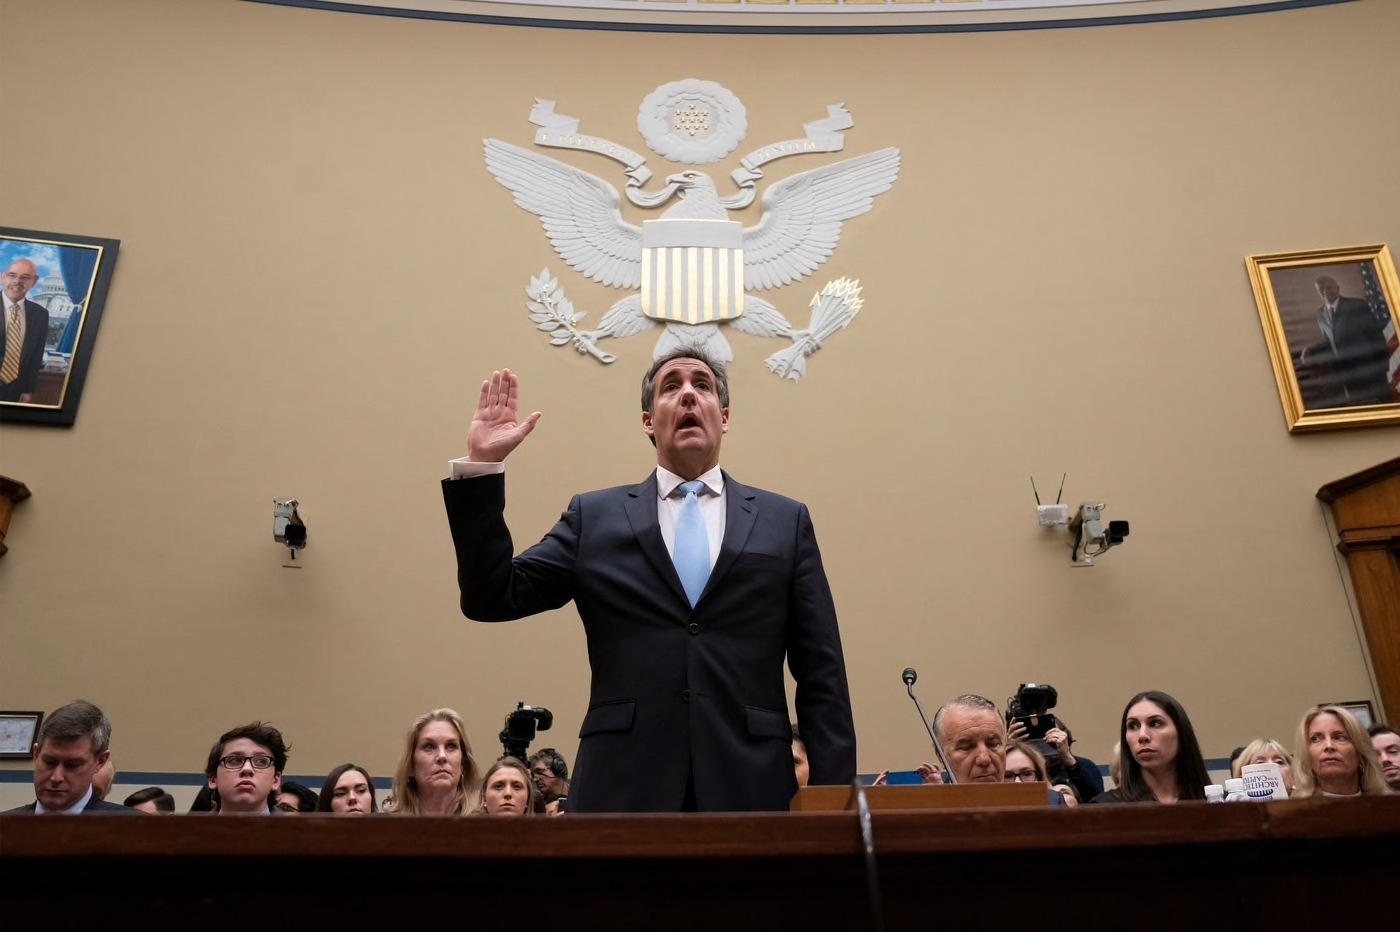 Michael Cohen stands before the House of Representatives to deliver testimony.